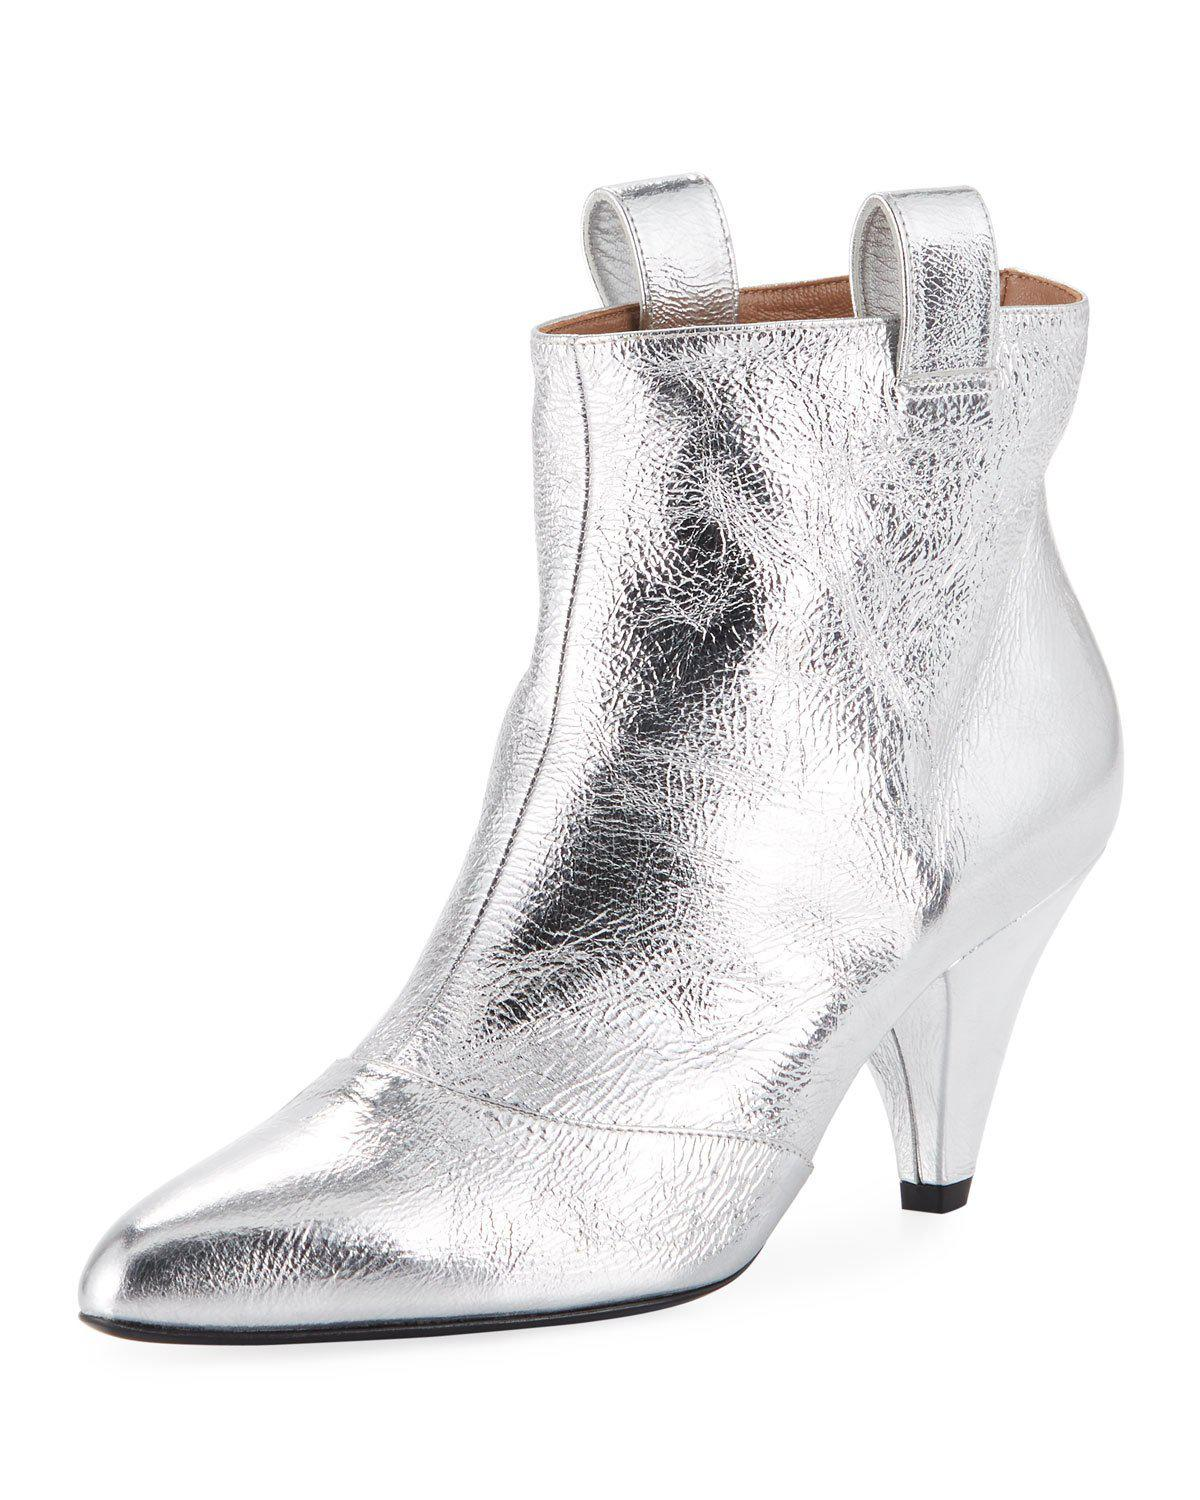 11002317b5c Laurence Dacade Terence 80Mm Metallic Leather Booties In Silver ...